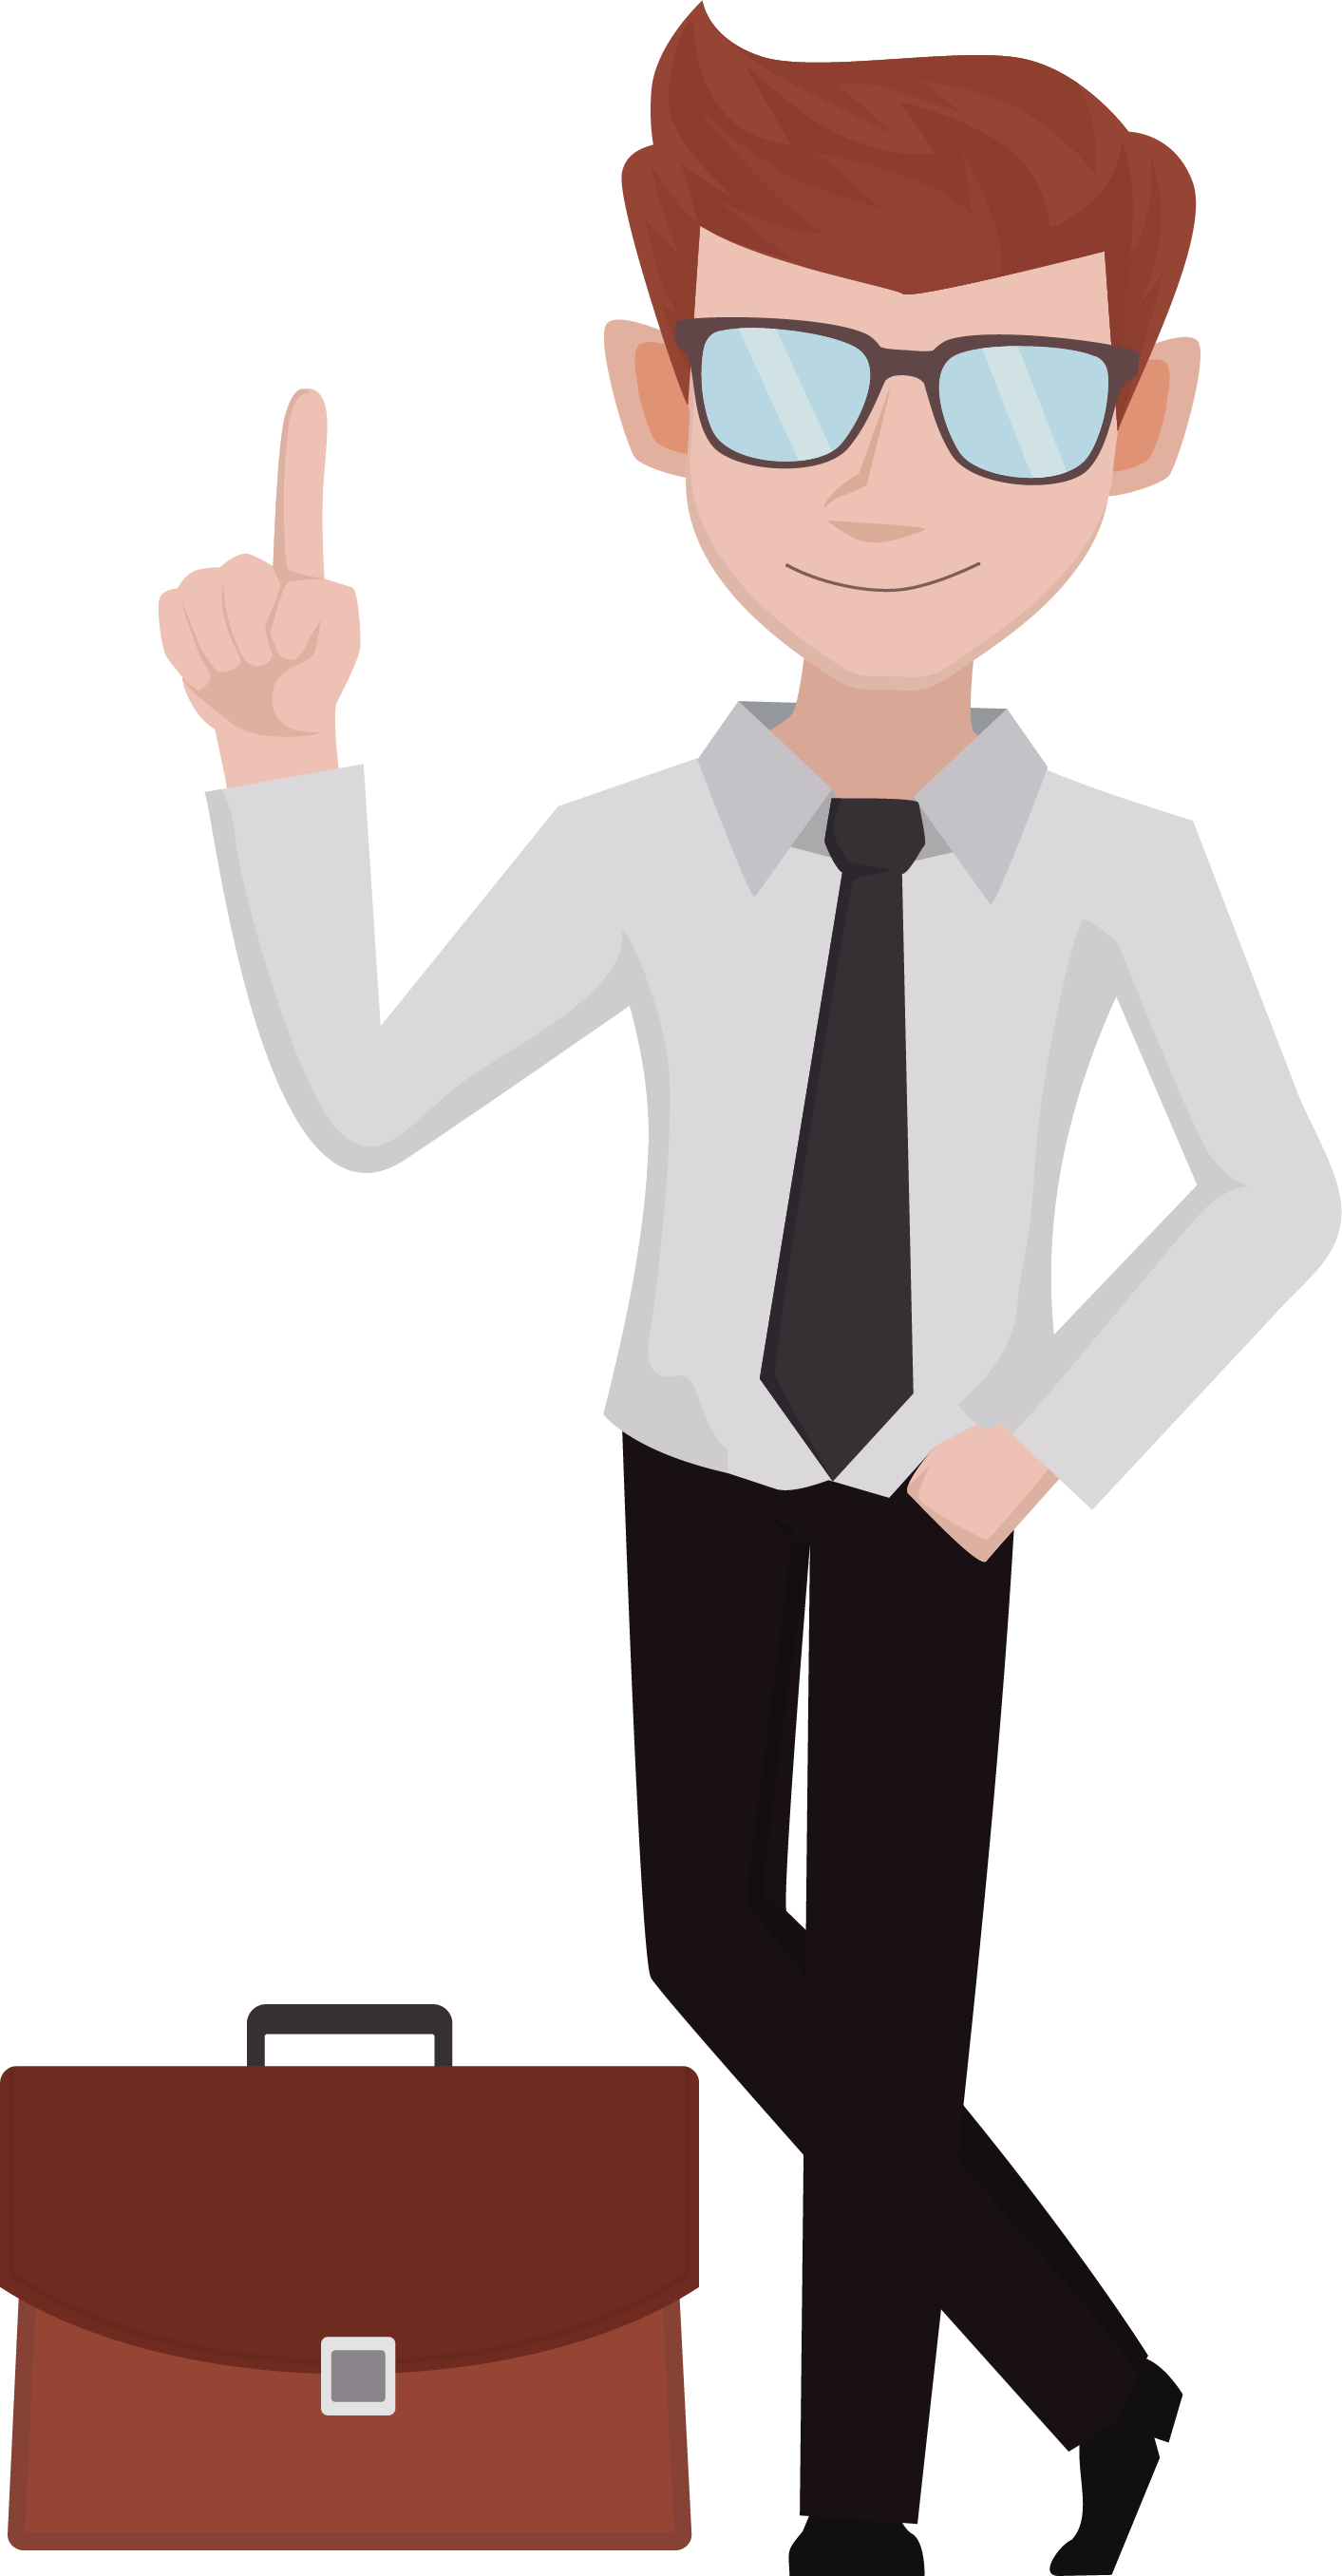 Intolerable acts clipart man. Business png transparent free